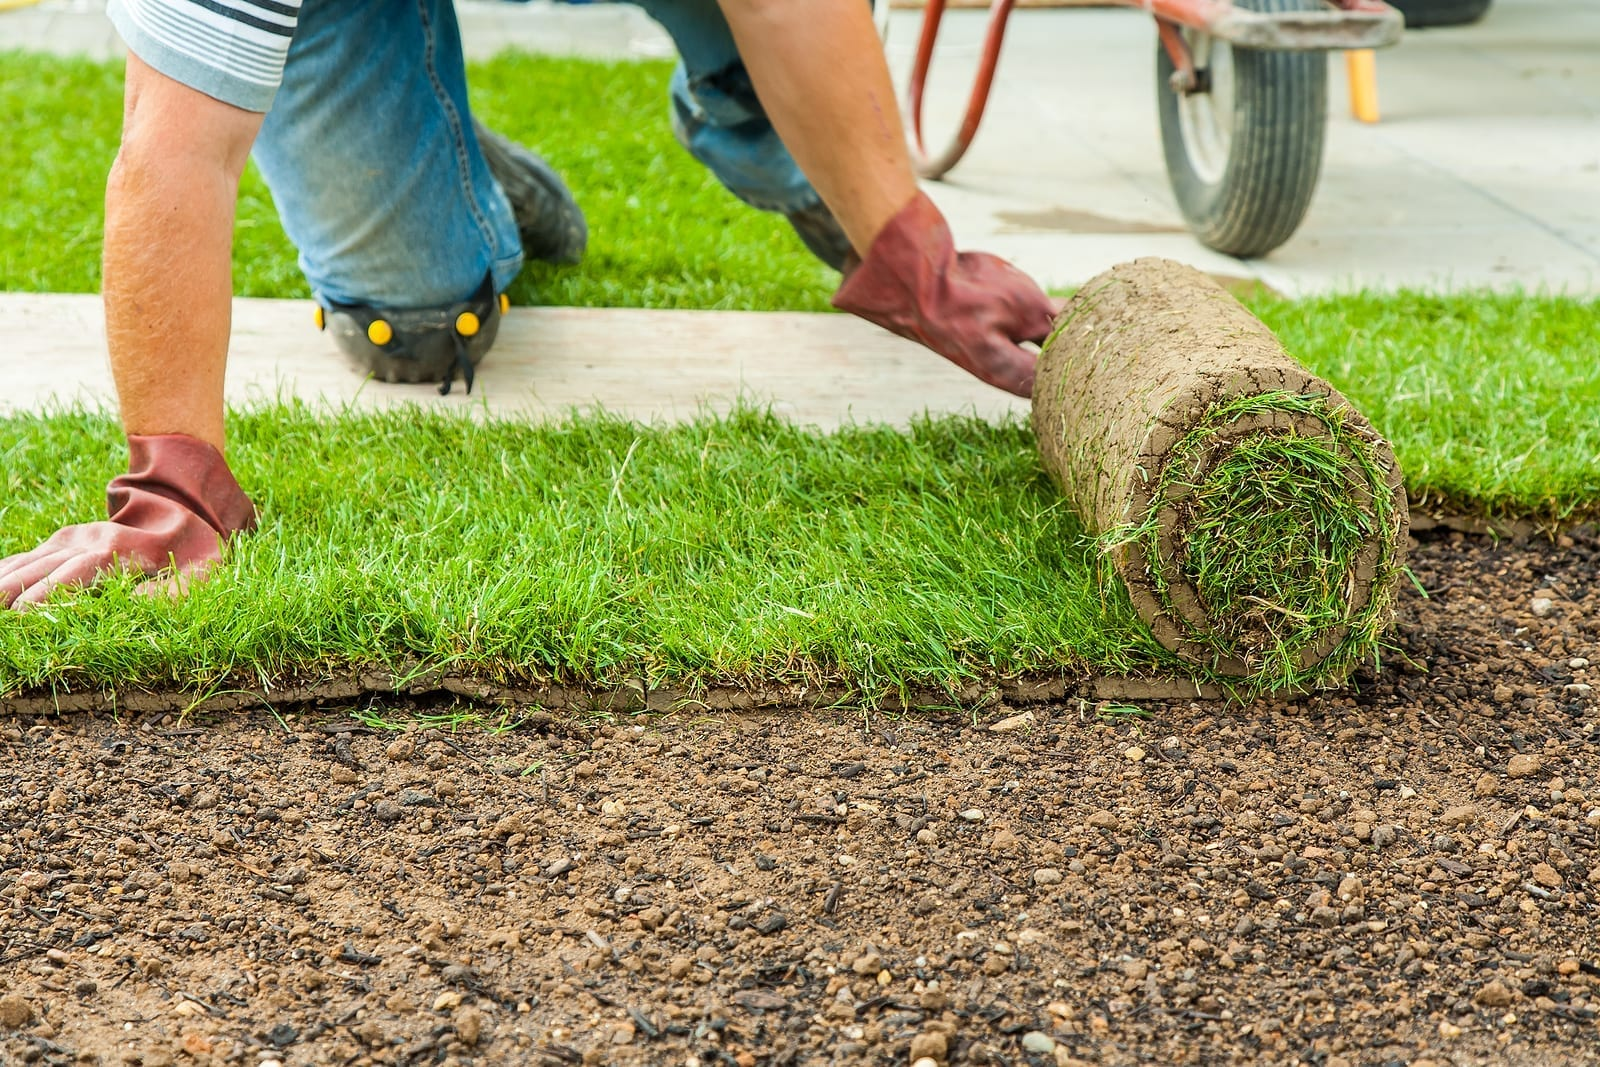 Albuquerque Sod Lawn—How to Install it So it is Successful by R & S Landscaping 505-271-8419 d